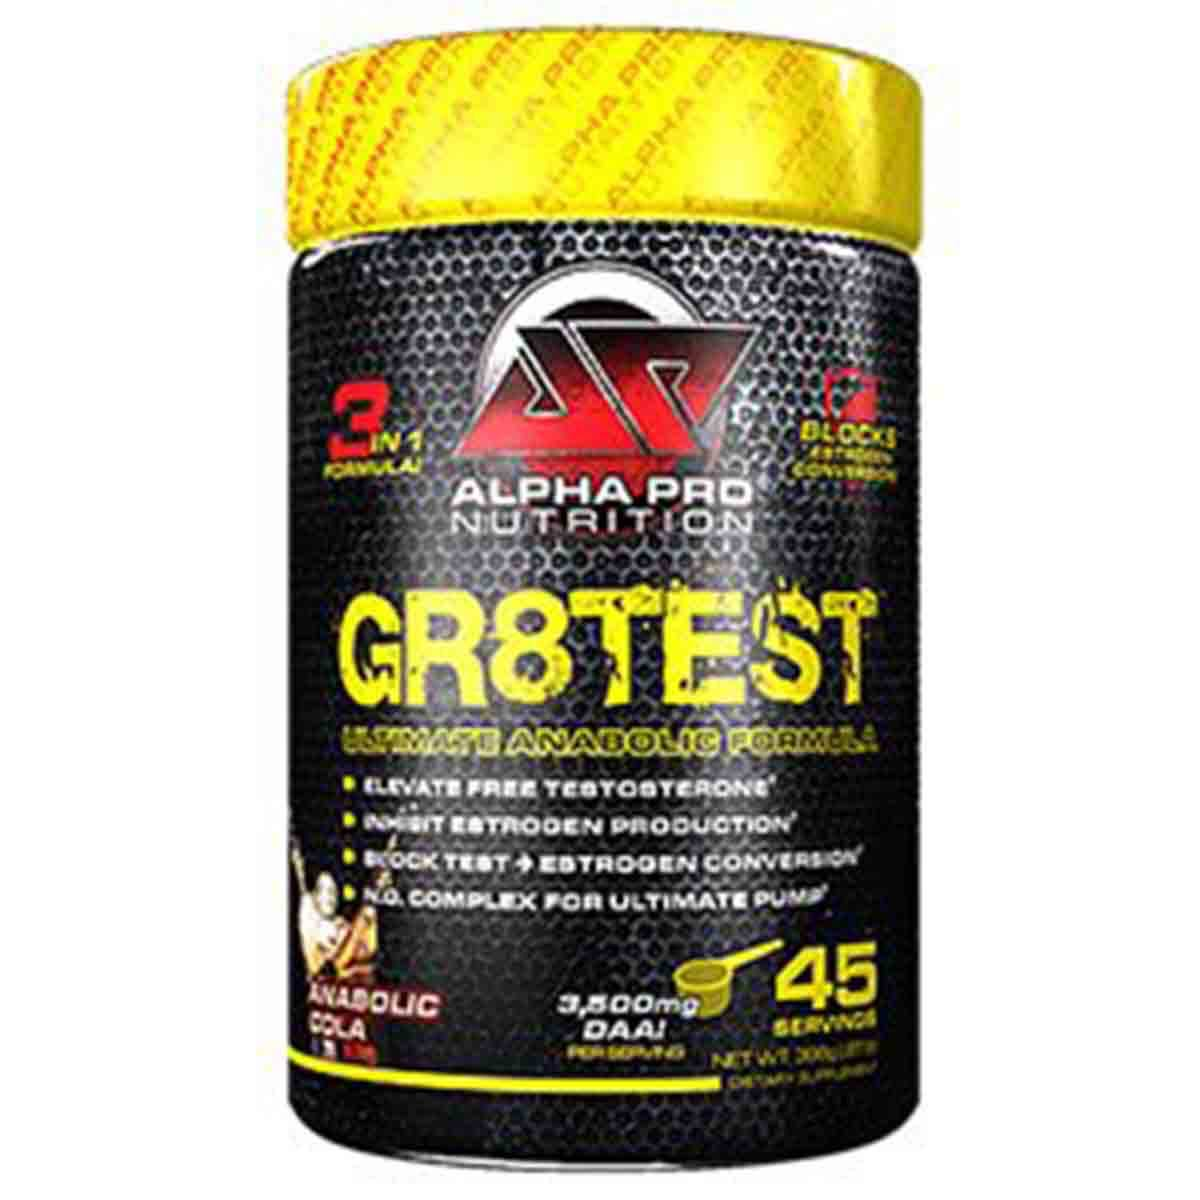 Alpha Pro Nutrition Gr8test